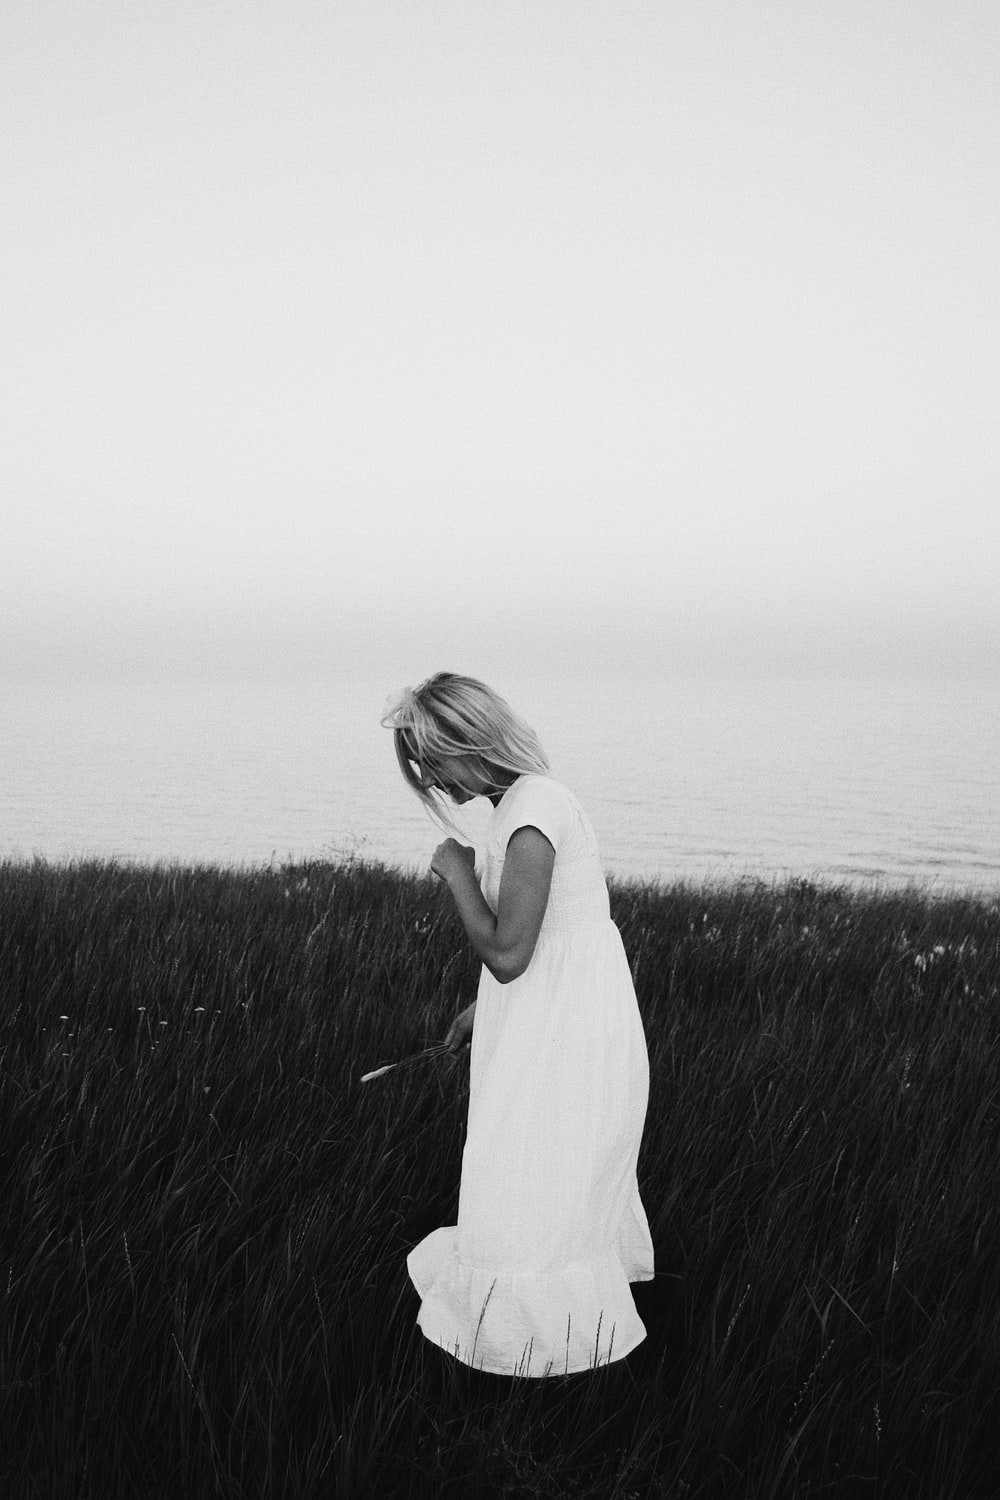 grayscale photography of woman wearing dress standing while looking down